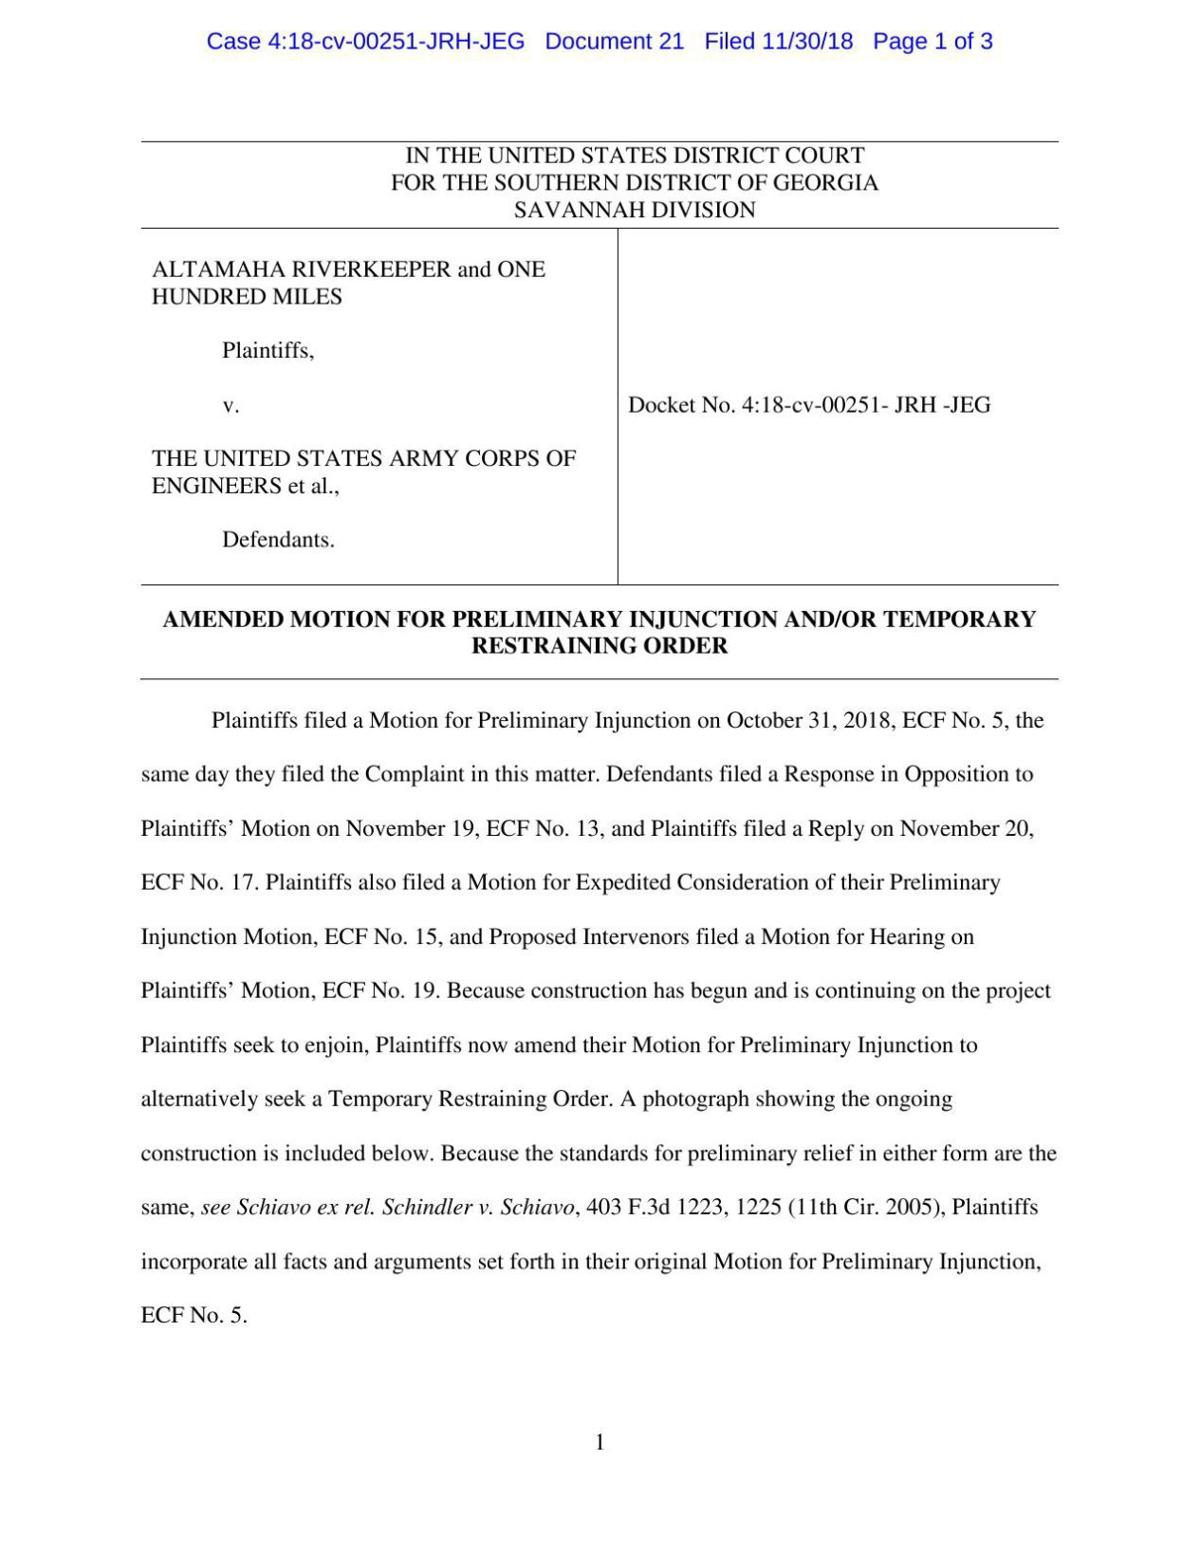 Plaintiffs' Amended Motion for Preliminary Injunction and/or Temporary Restraining Order